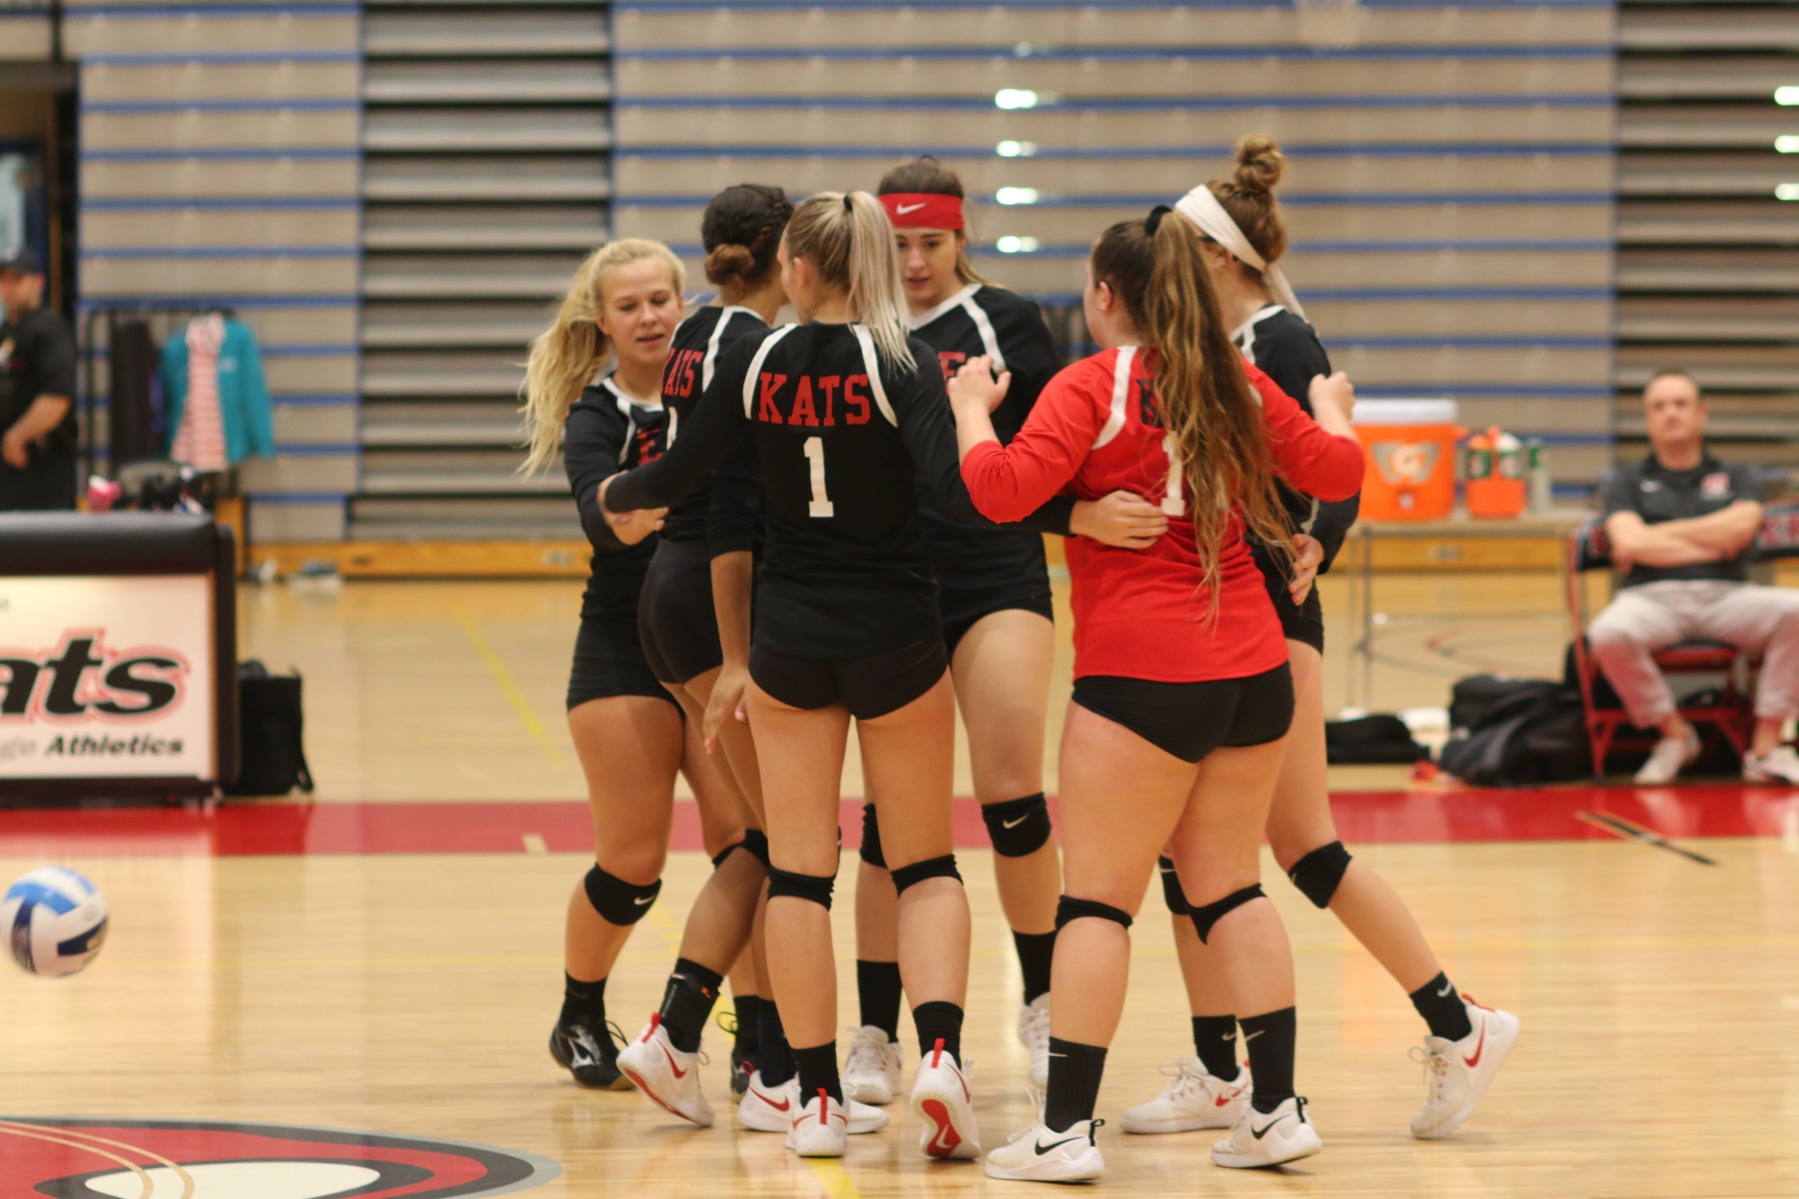 Volleyball Finishes Season with 3-1 Loss